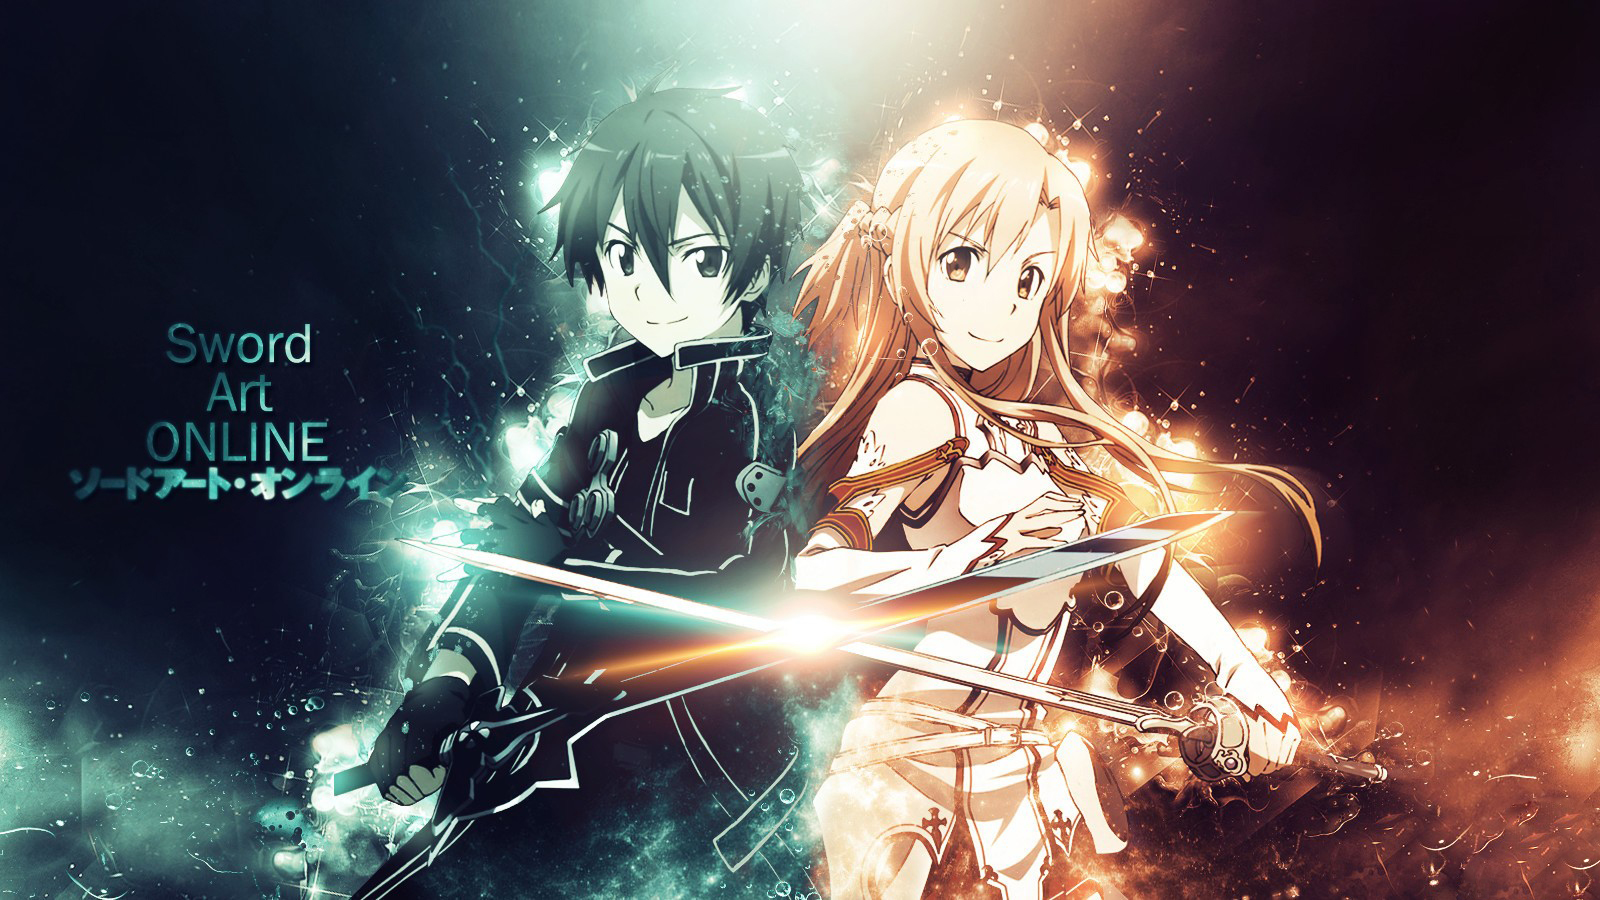 Sword Art Online Background: Kirito And Asuna Wallpaper And Background Image